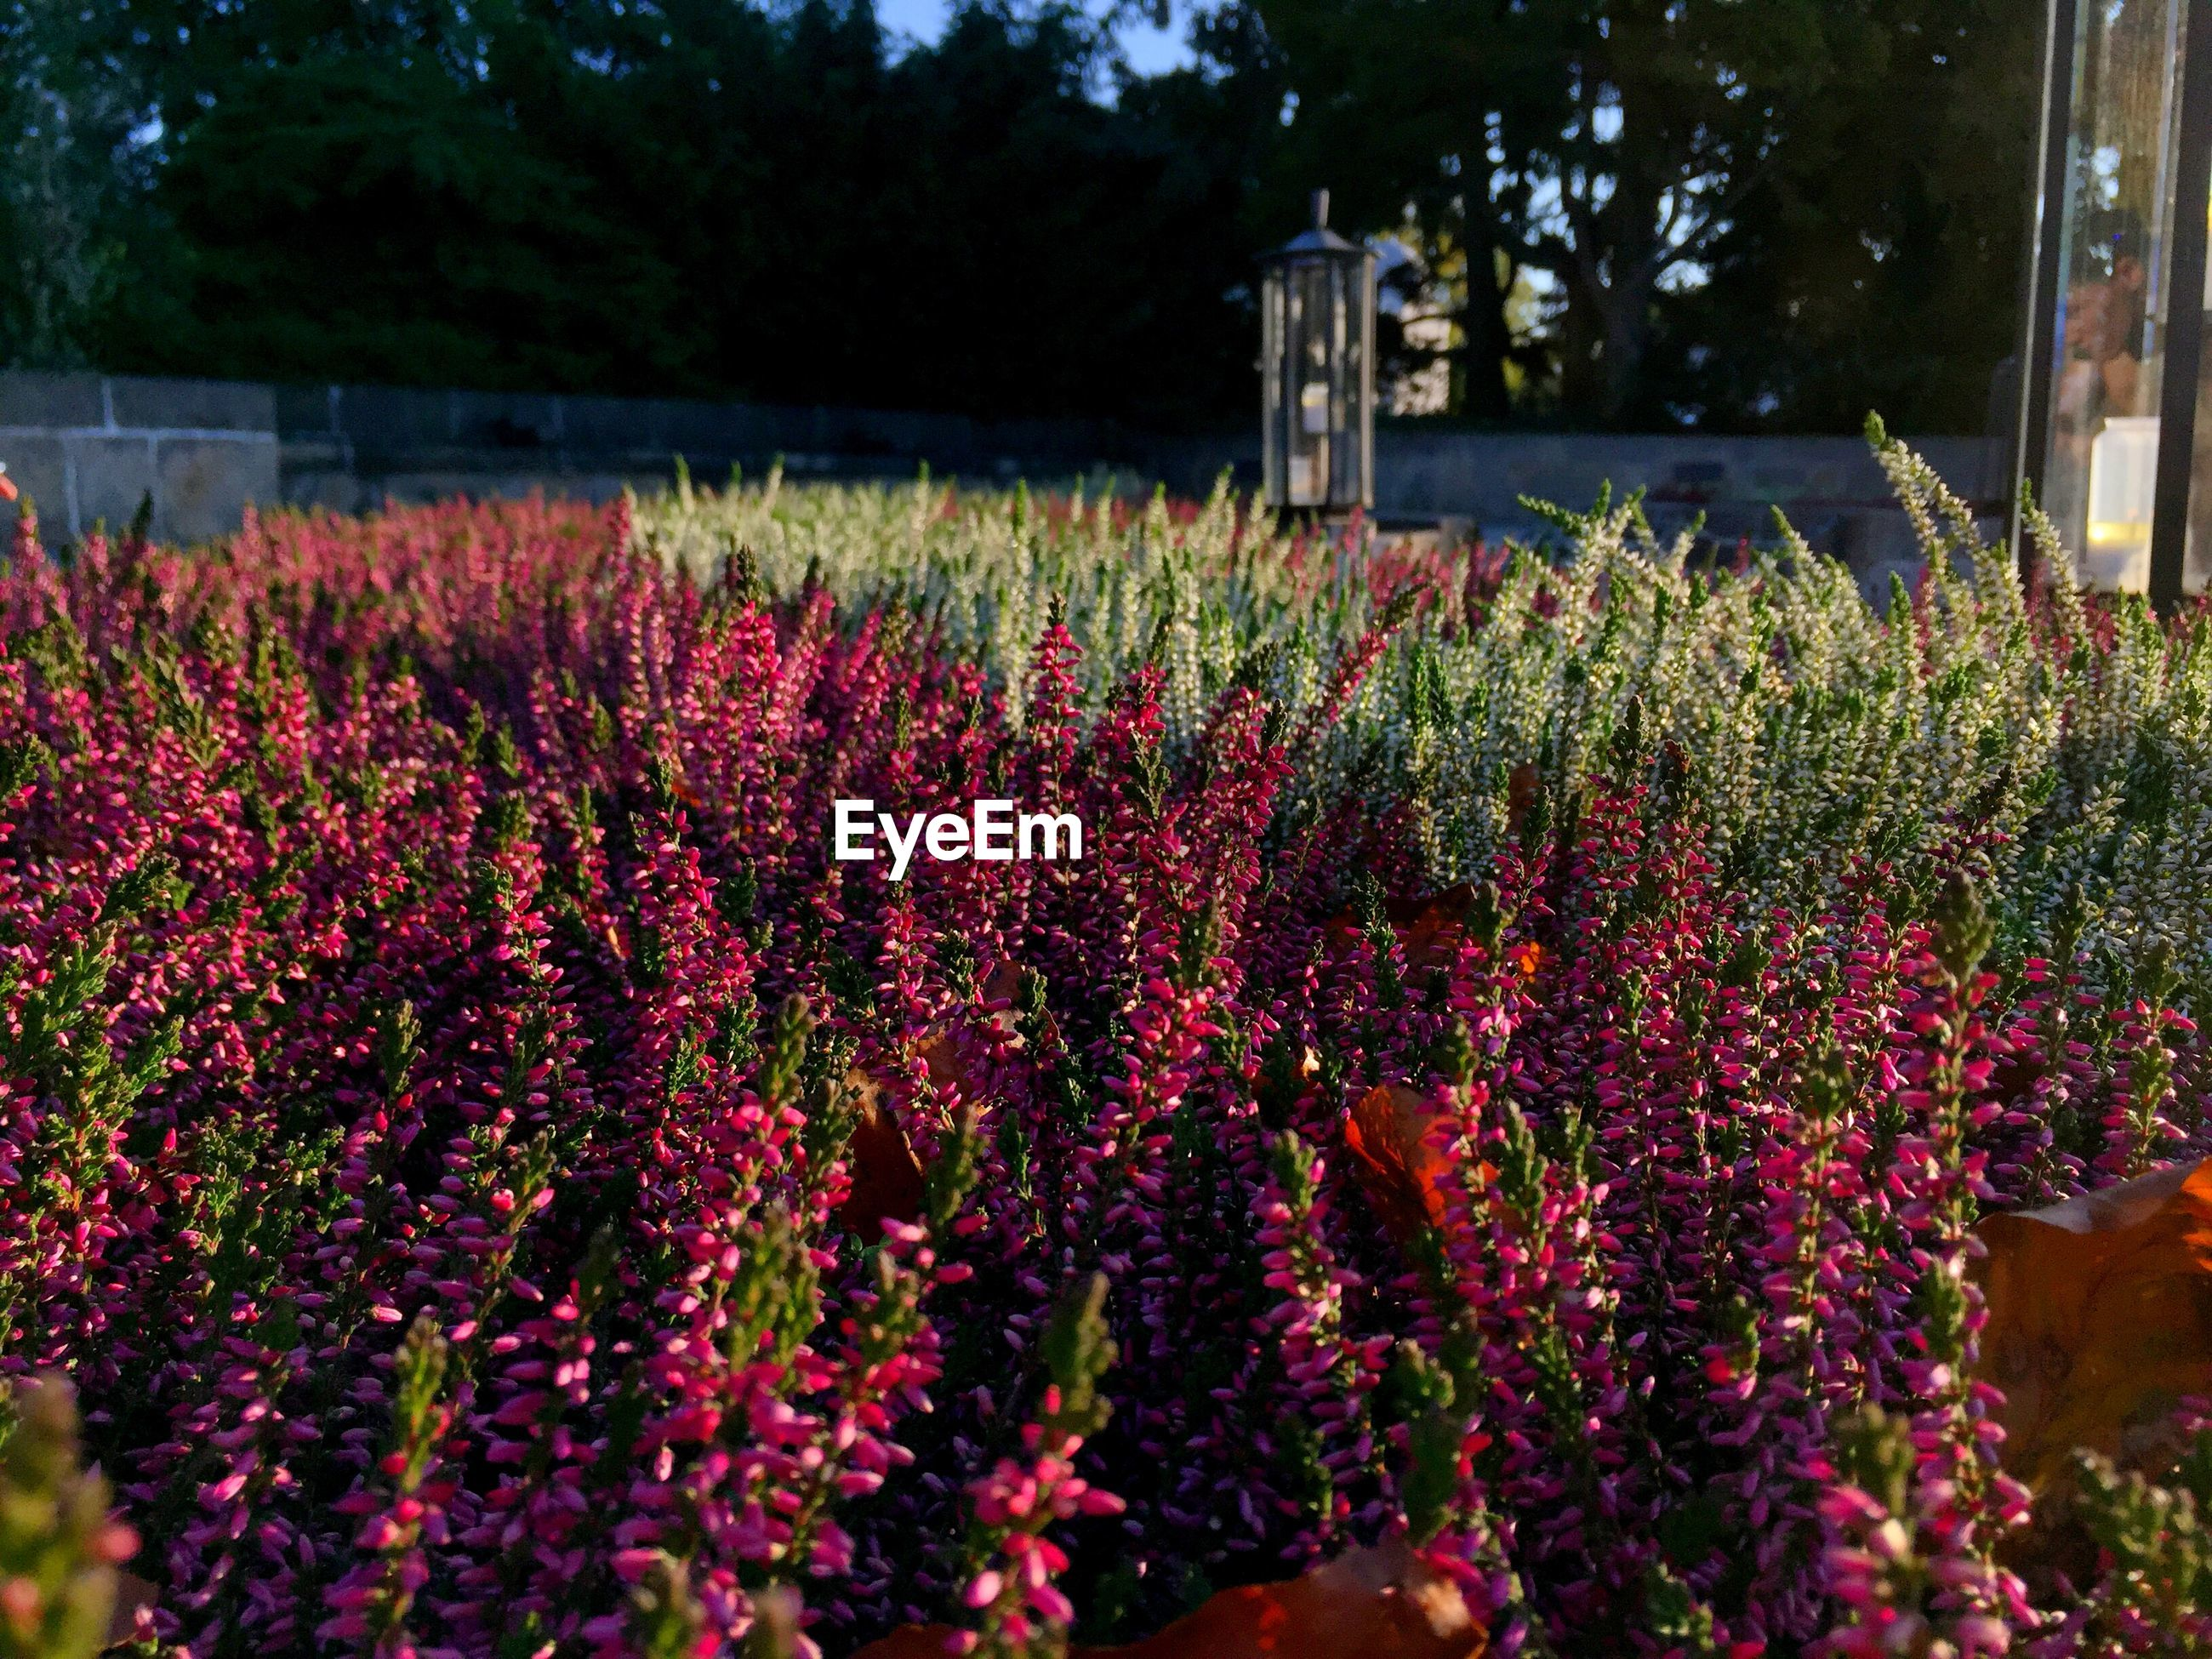 RED FLOWERING PLANTS ON LAND